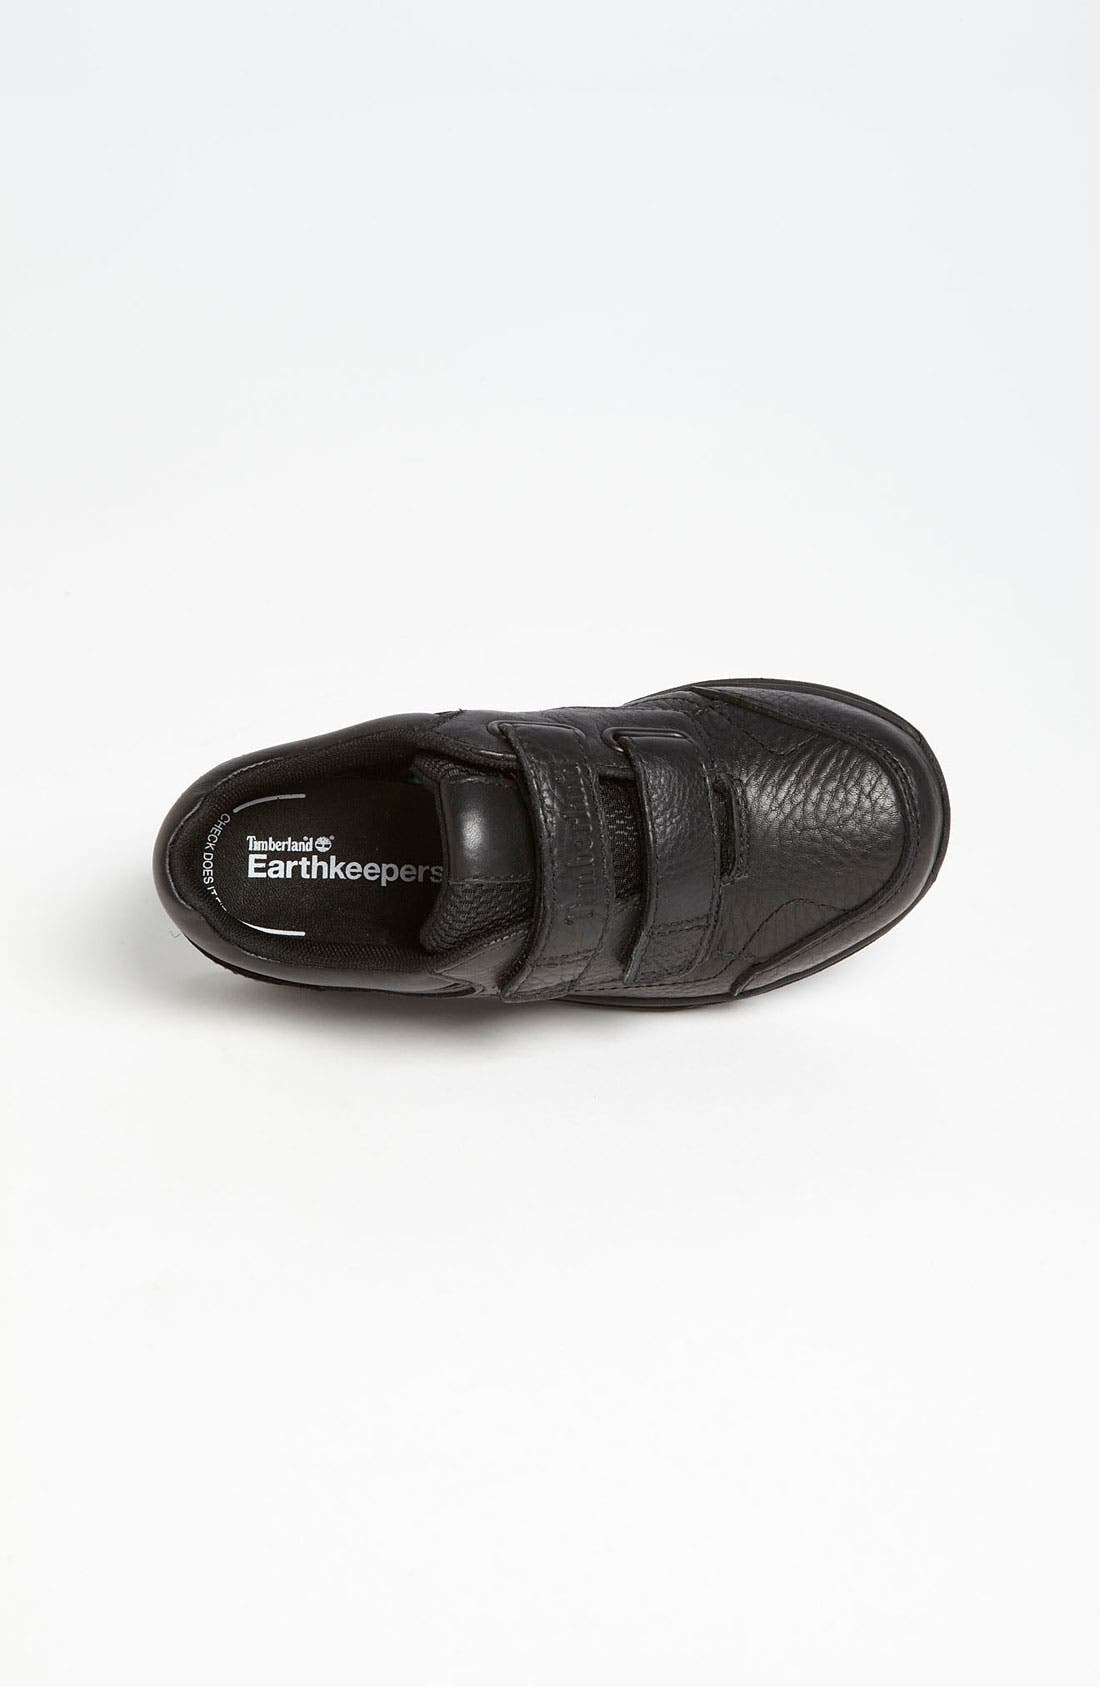 Alternate Image 3  - Timberland Earthkeepers® 'Park Street' Dress Shoe (Toddler, Little Kid & Big Kid)